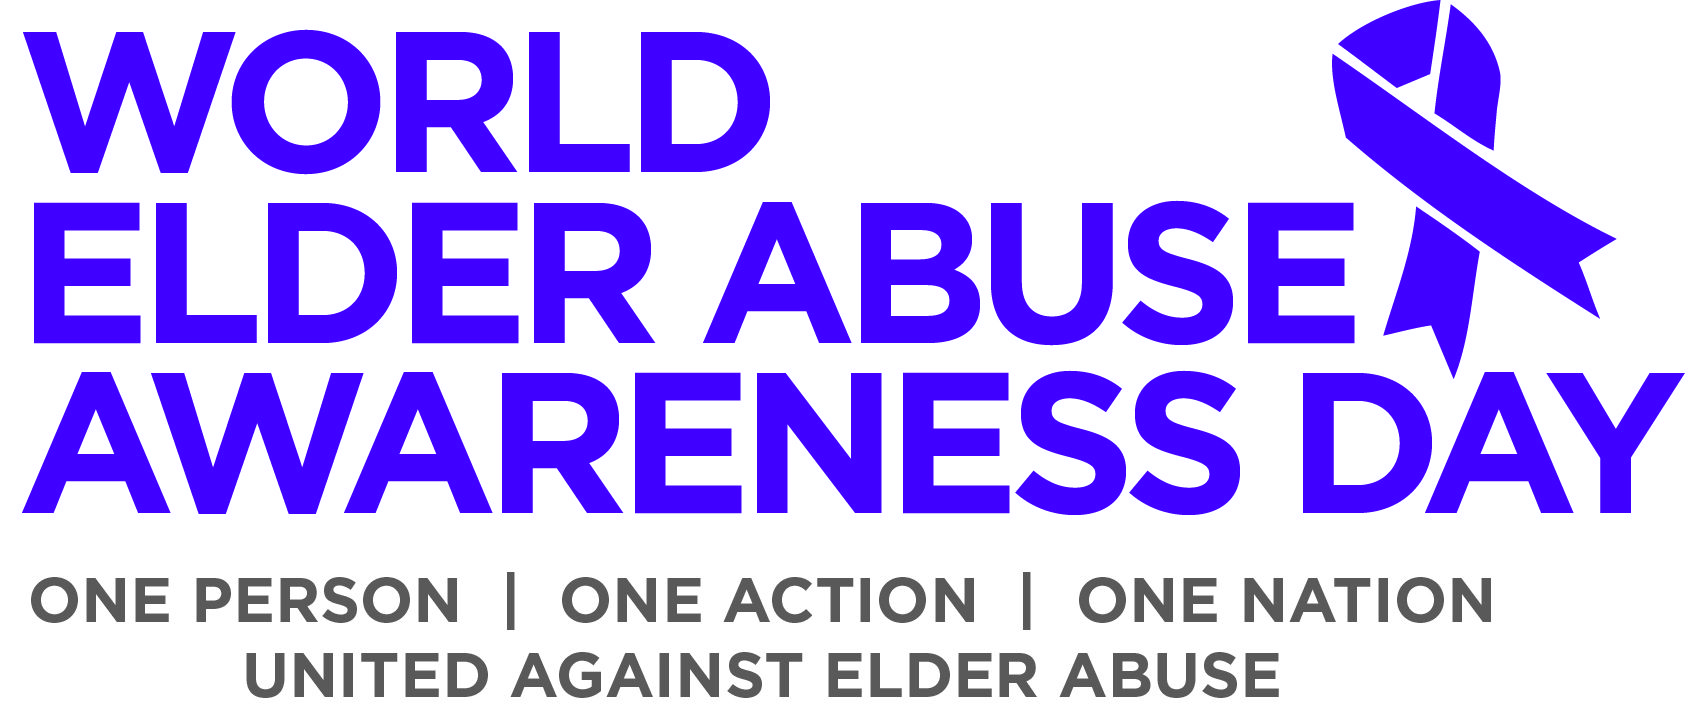 Essay title about elder abuse and another about my grandma?